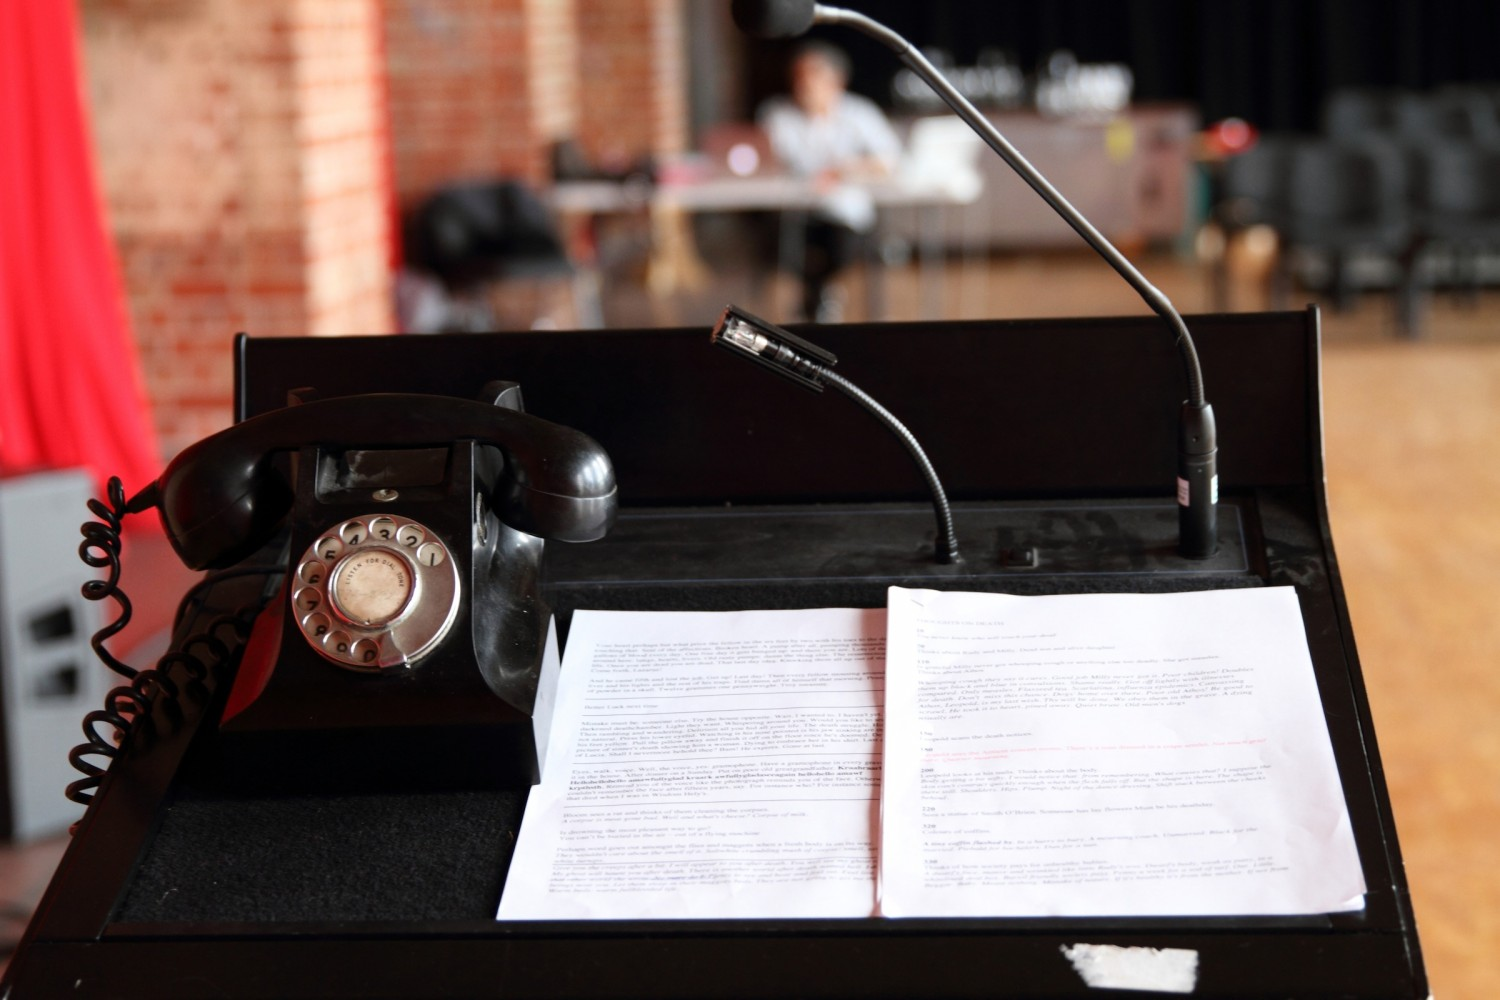 Old fashioned black telephone on stand with papers against a blurred room background